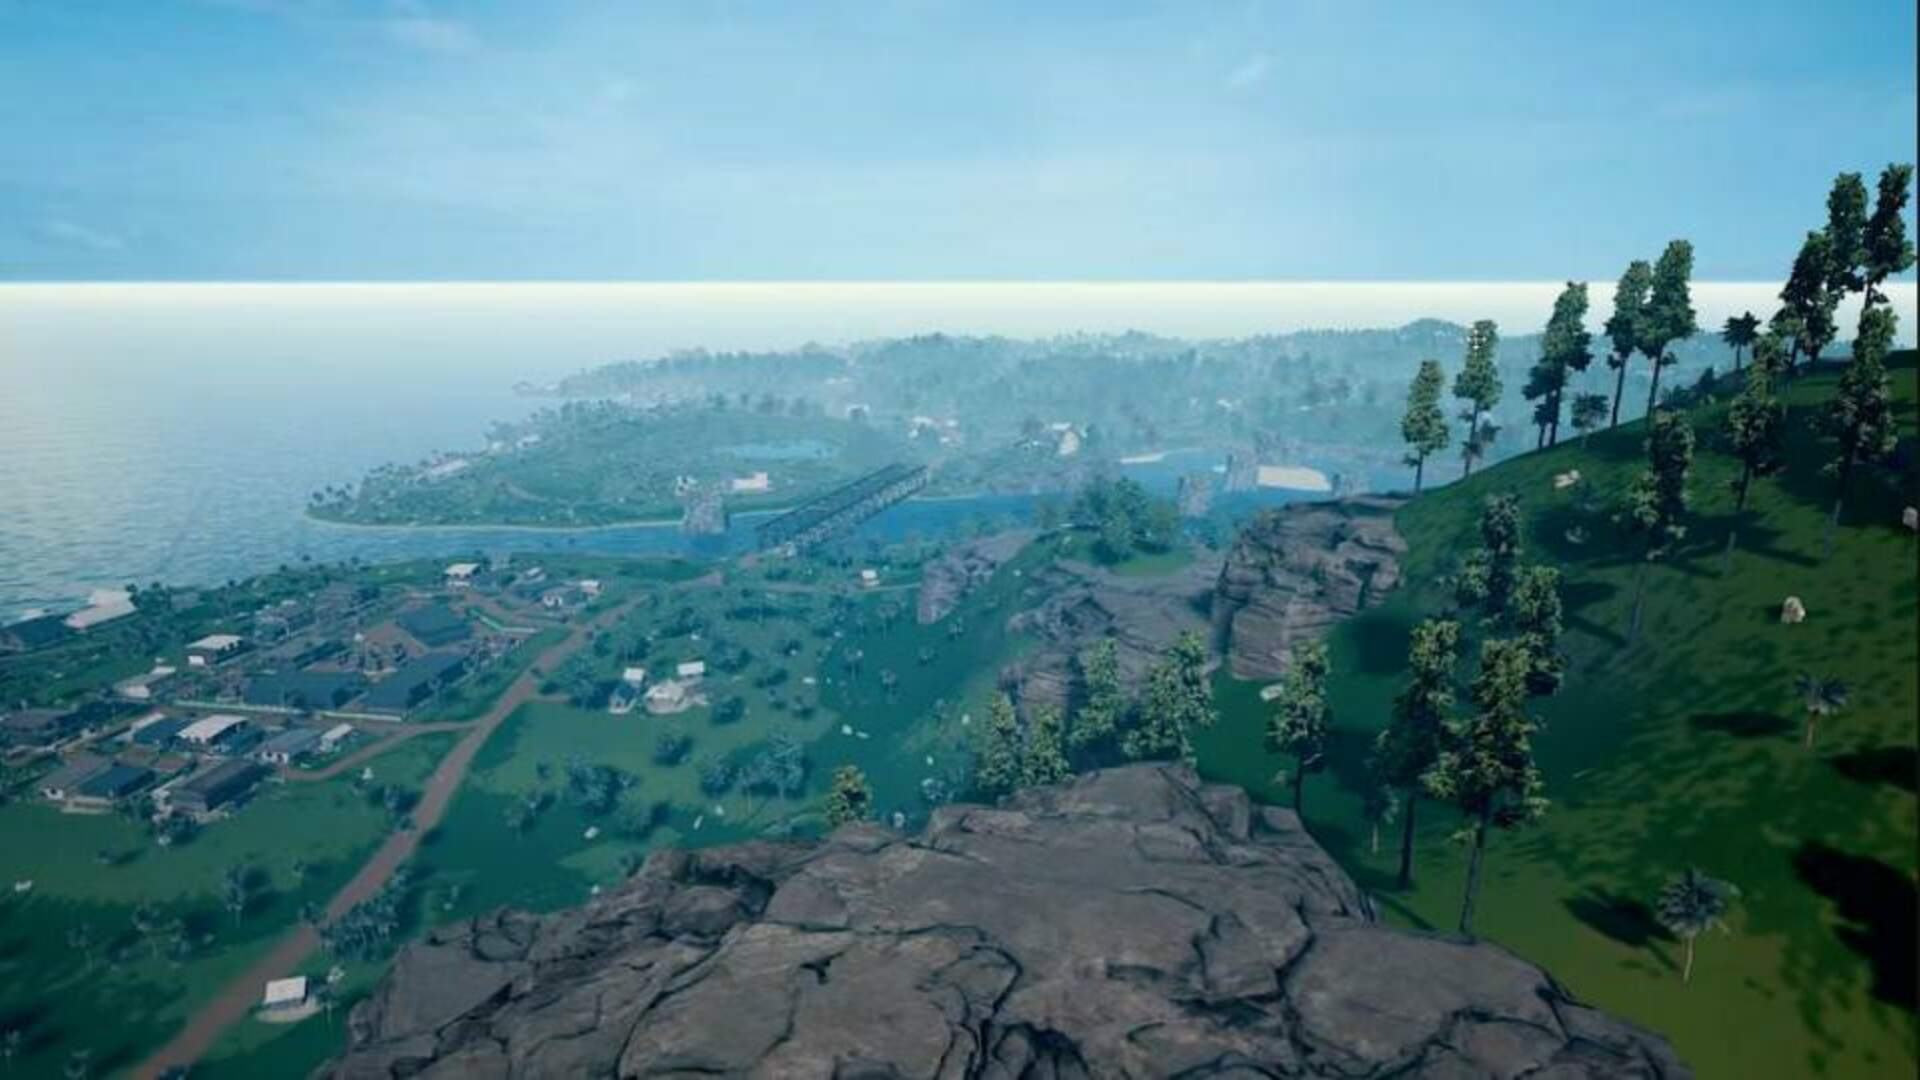 PUBG Adds Spectator Modes to Its Kill Cams